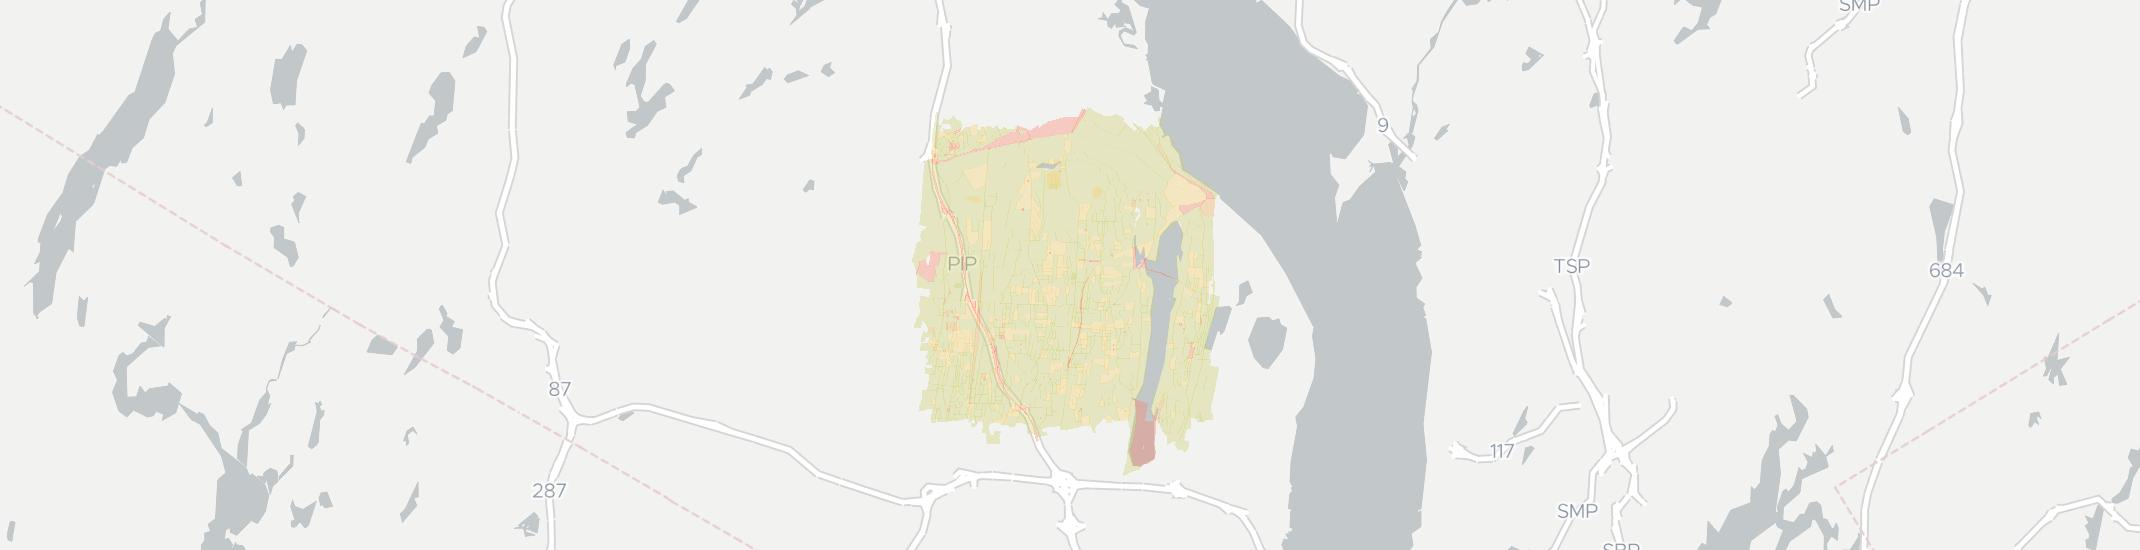 New City Internet Competition Map. Click for interactive map.